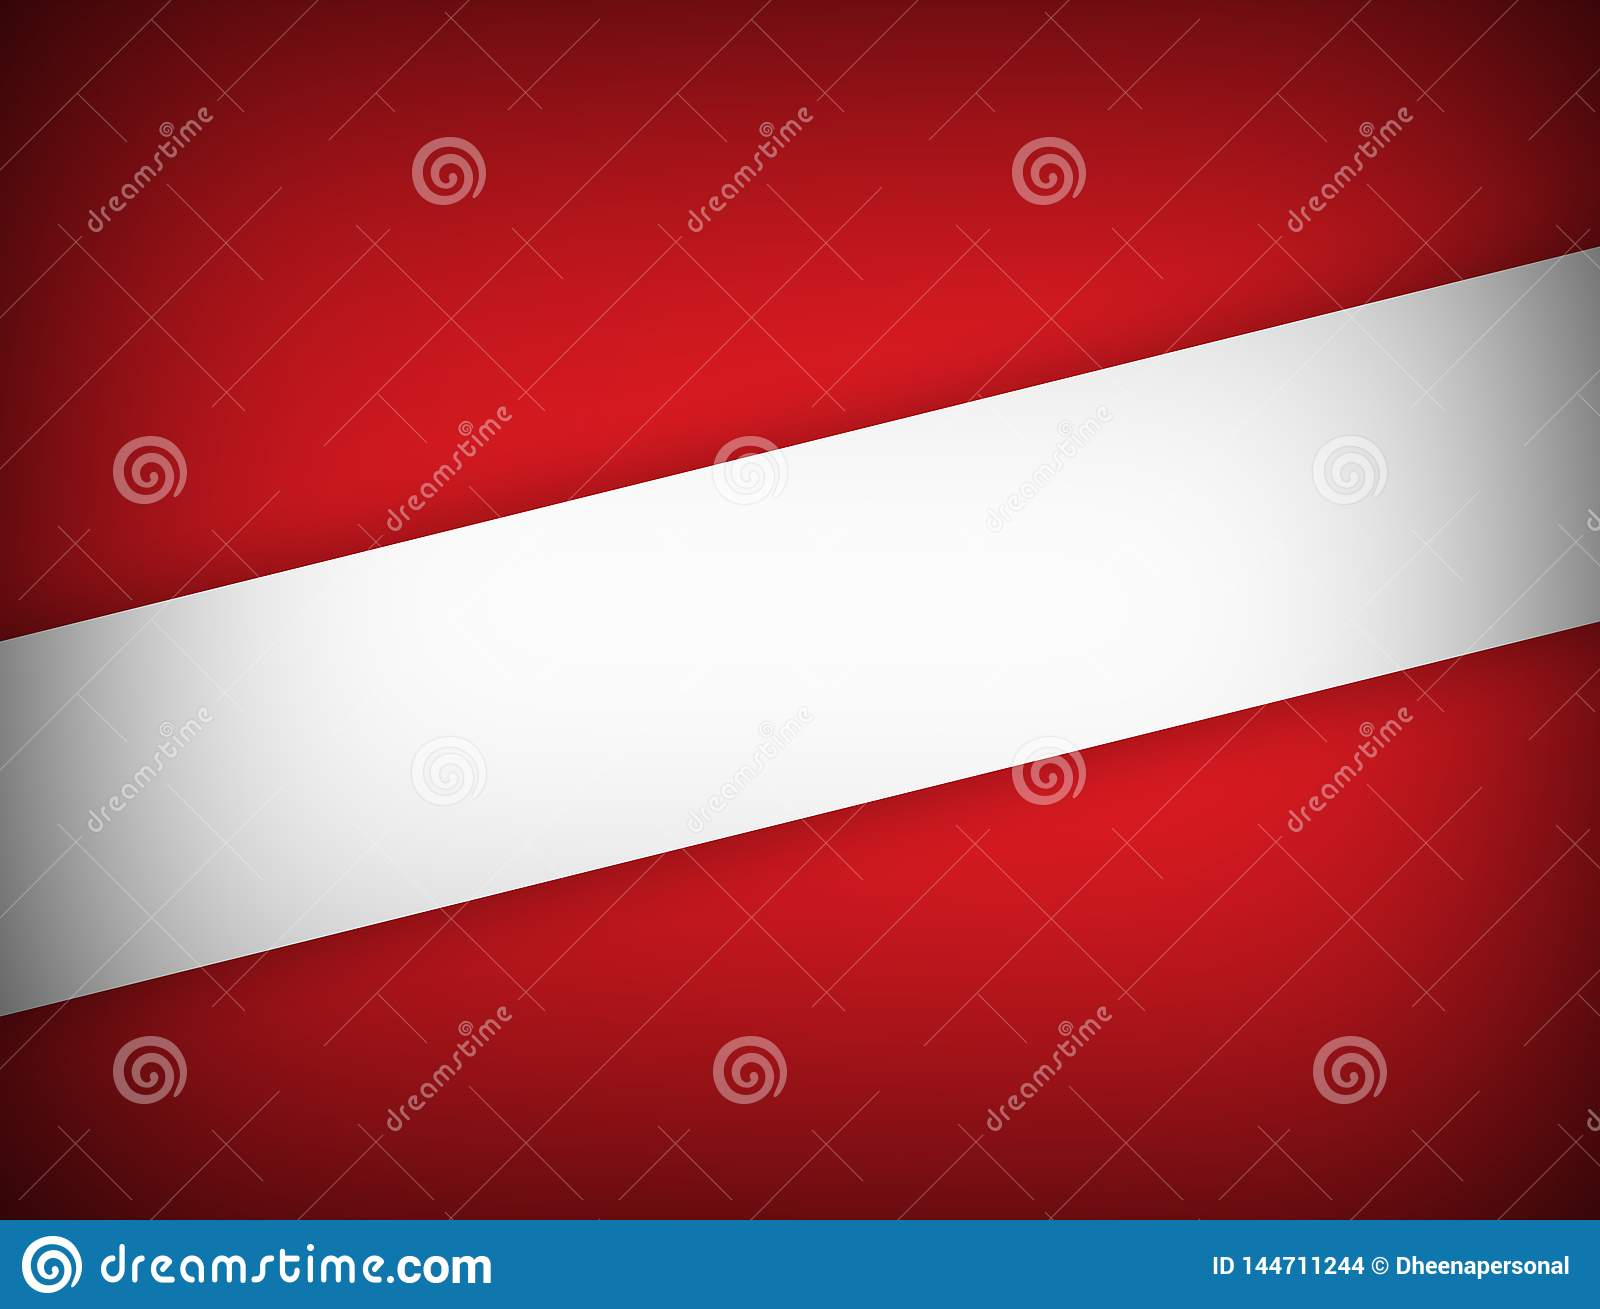 Red and white color geometric abstract background modern design with copy space Vector illustration.